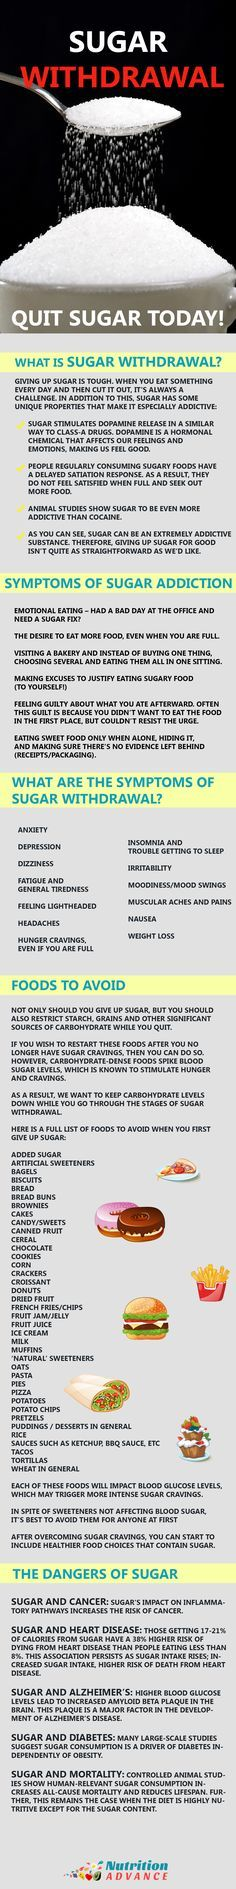 Sugar Withdrawal: How to Quit Sugar For Good - For some people, sugar is a very moreish ingredient and many even claim to have an addiction to the white stuff. How can we beat these feelings of addiction? And what are the symptoms? And what kind of side effects might occur from sugar withdrawal? This infograph looks at those things, from the article at http://nutritionadvance.com/sugar-withdrawal-give-up